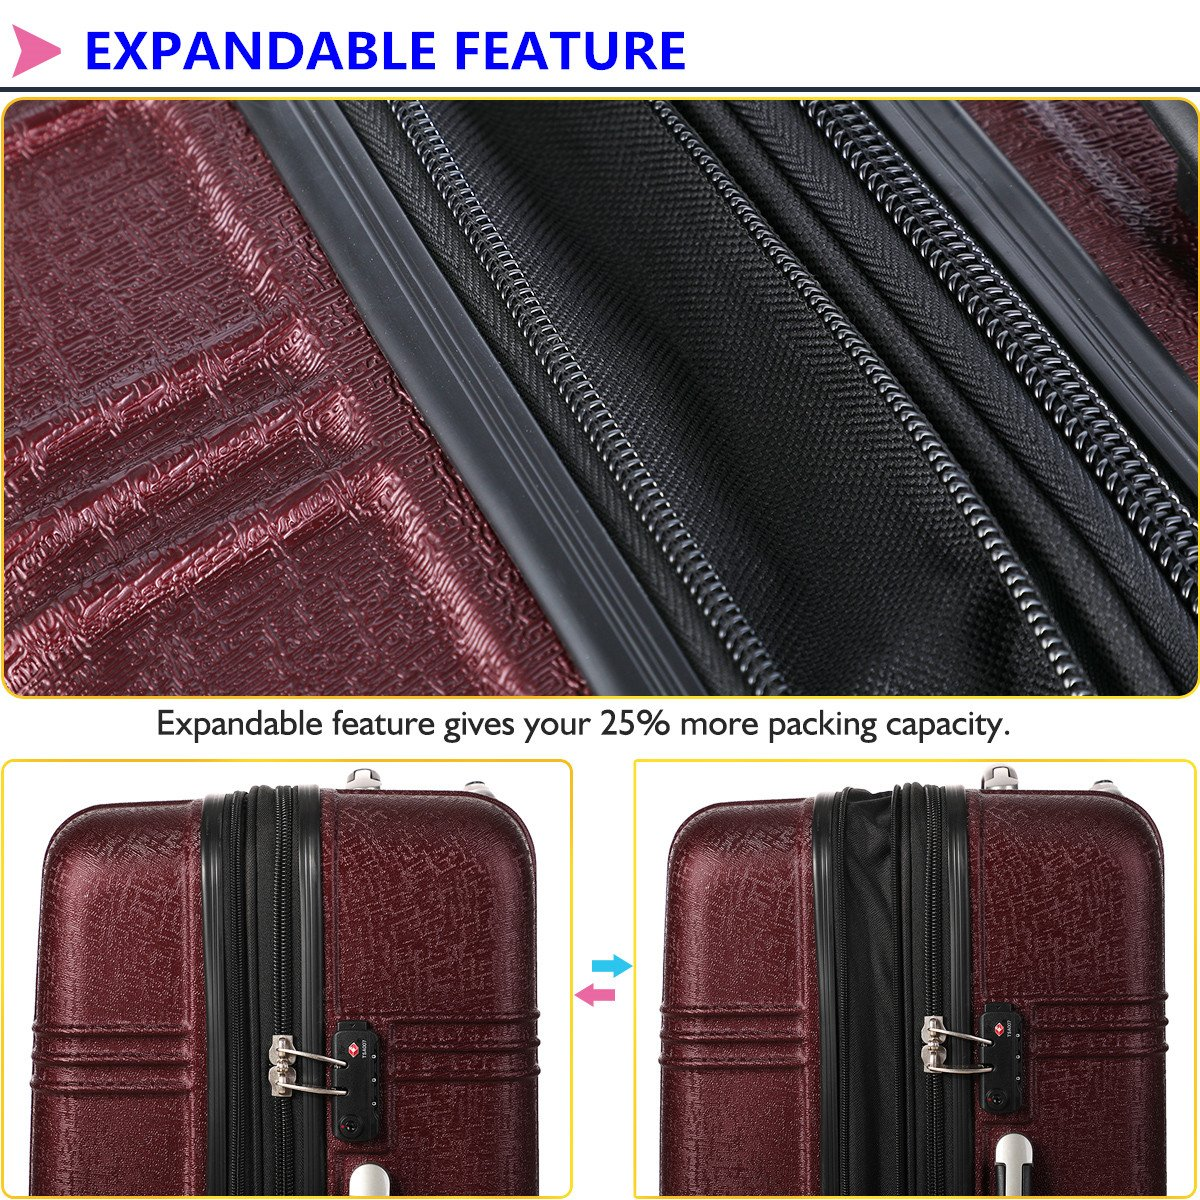 Expandable Carry On Luggage Lightweight Spinner Carry Ons TSA Hardside Luggage Suitcase, 20 inches (BURGUNDY) by Travel Joy (Image #2)